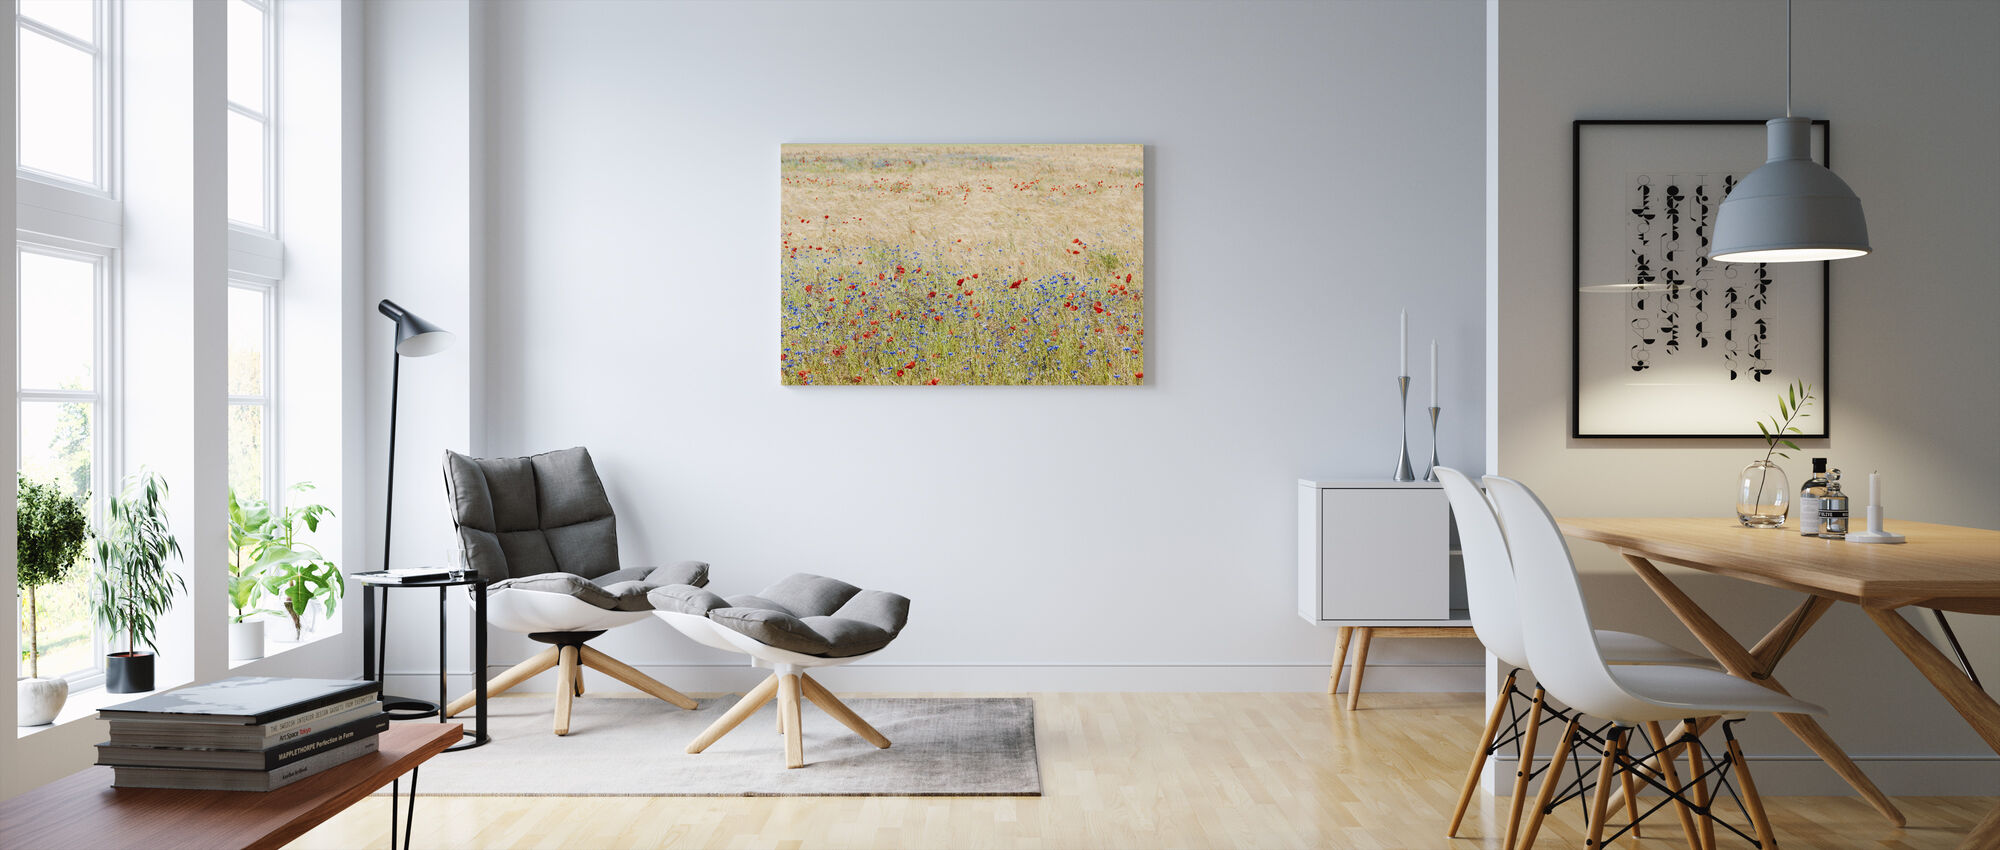 Rye Field with Flowers - Canvas print - Living Room